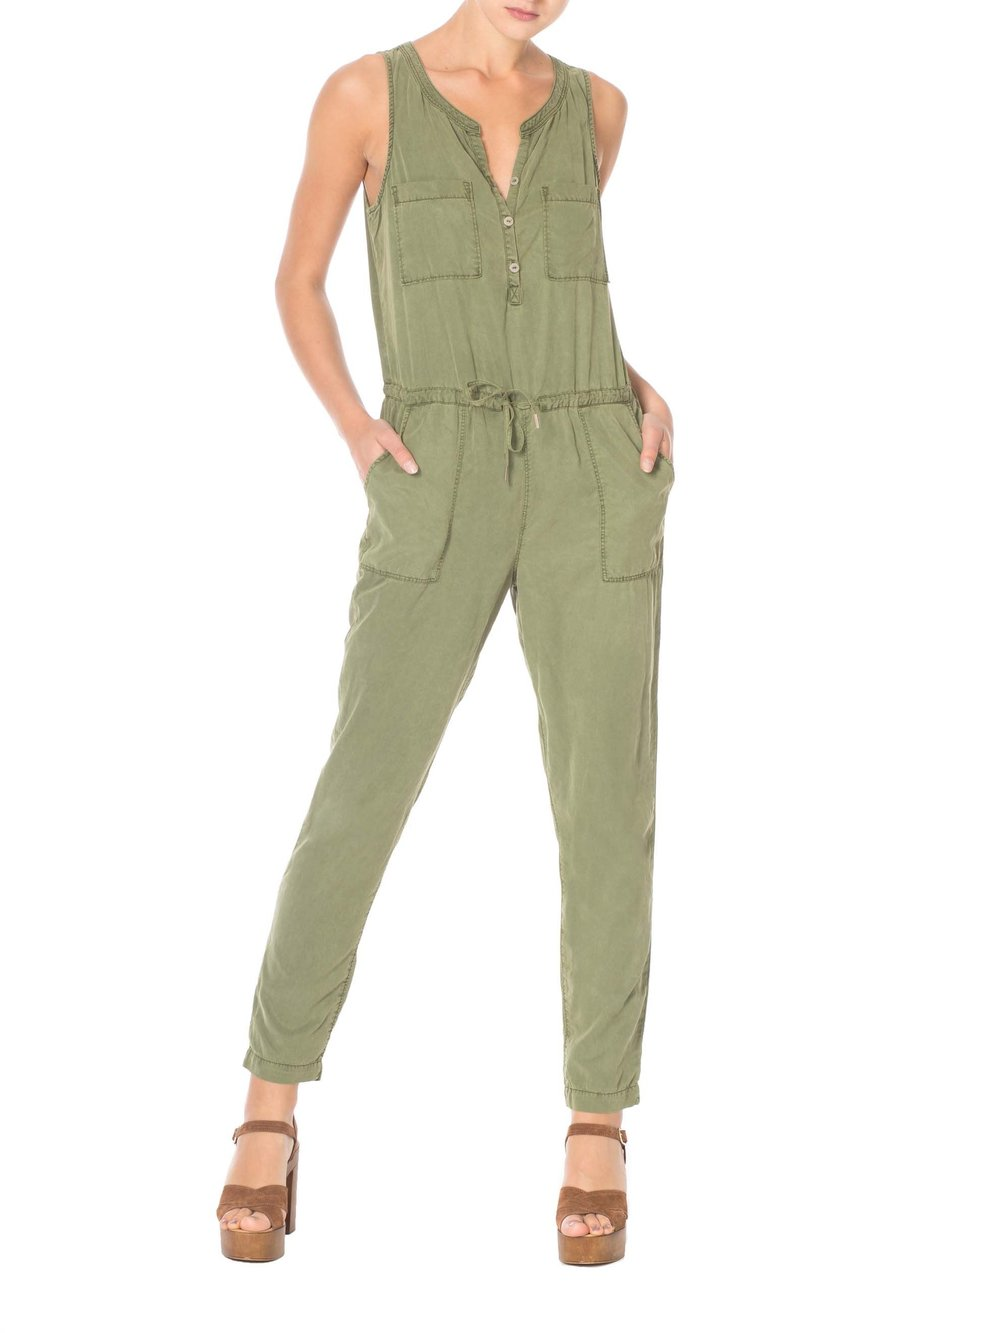 Green Safari Jumpsuit